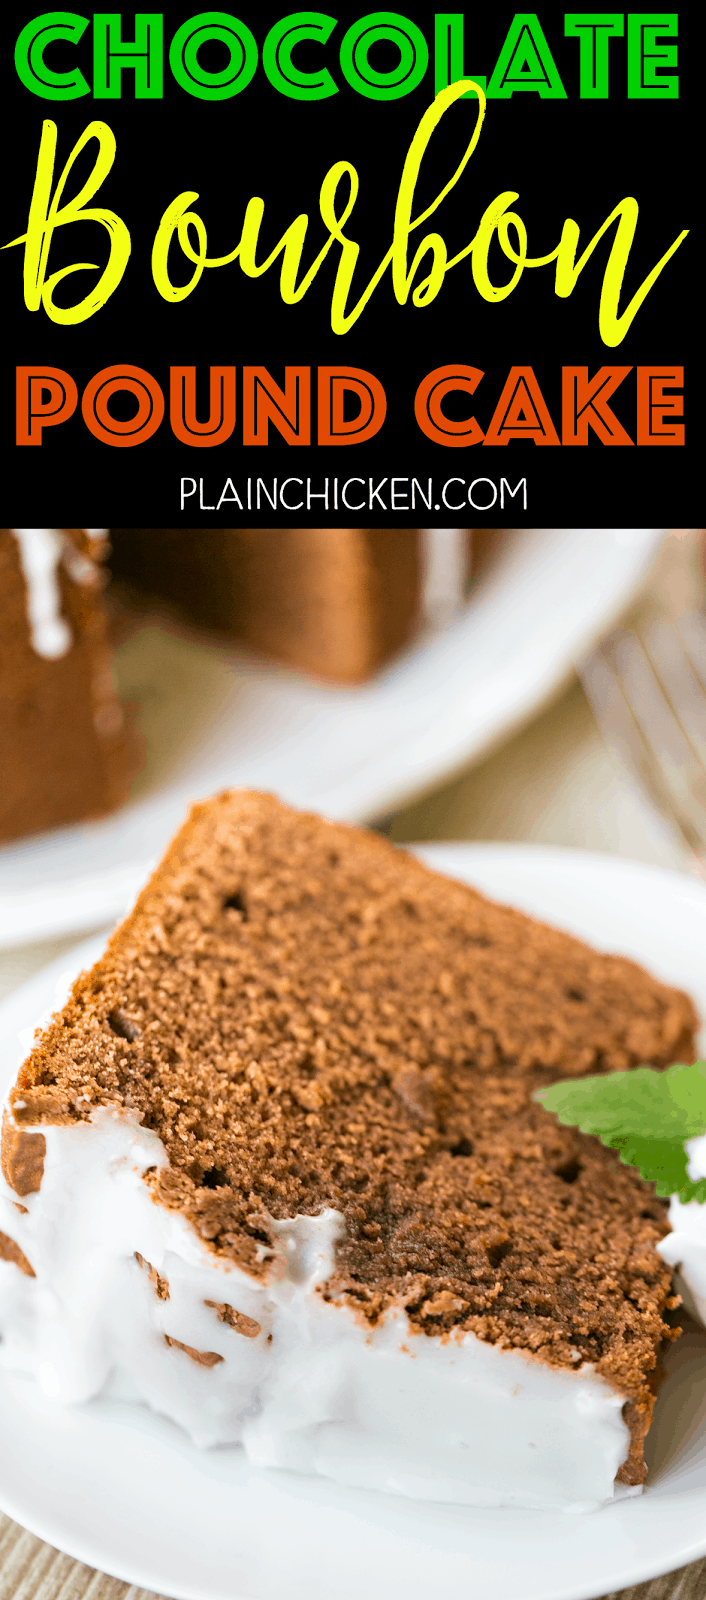 Chocolate Bourbon Pound Cake - crazy good! Easy home made chocolate pound cake spiked with bourbon. Flour, cocoa powder, chocolate pudding mix, baking soda, butter, sugar, eggs, sour cream and bourbon. Can make ahead of time and freeze for later. Perfect for potlucks, cookouts and watching the Kentucky Derby! Everyone loves this easy pound cake dessert recipe!